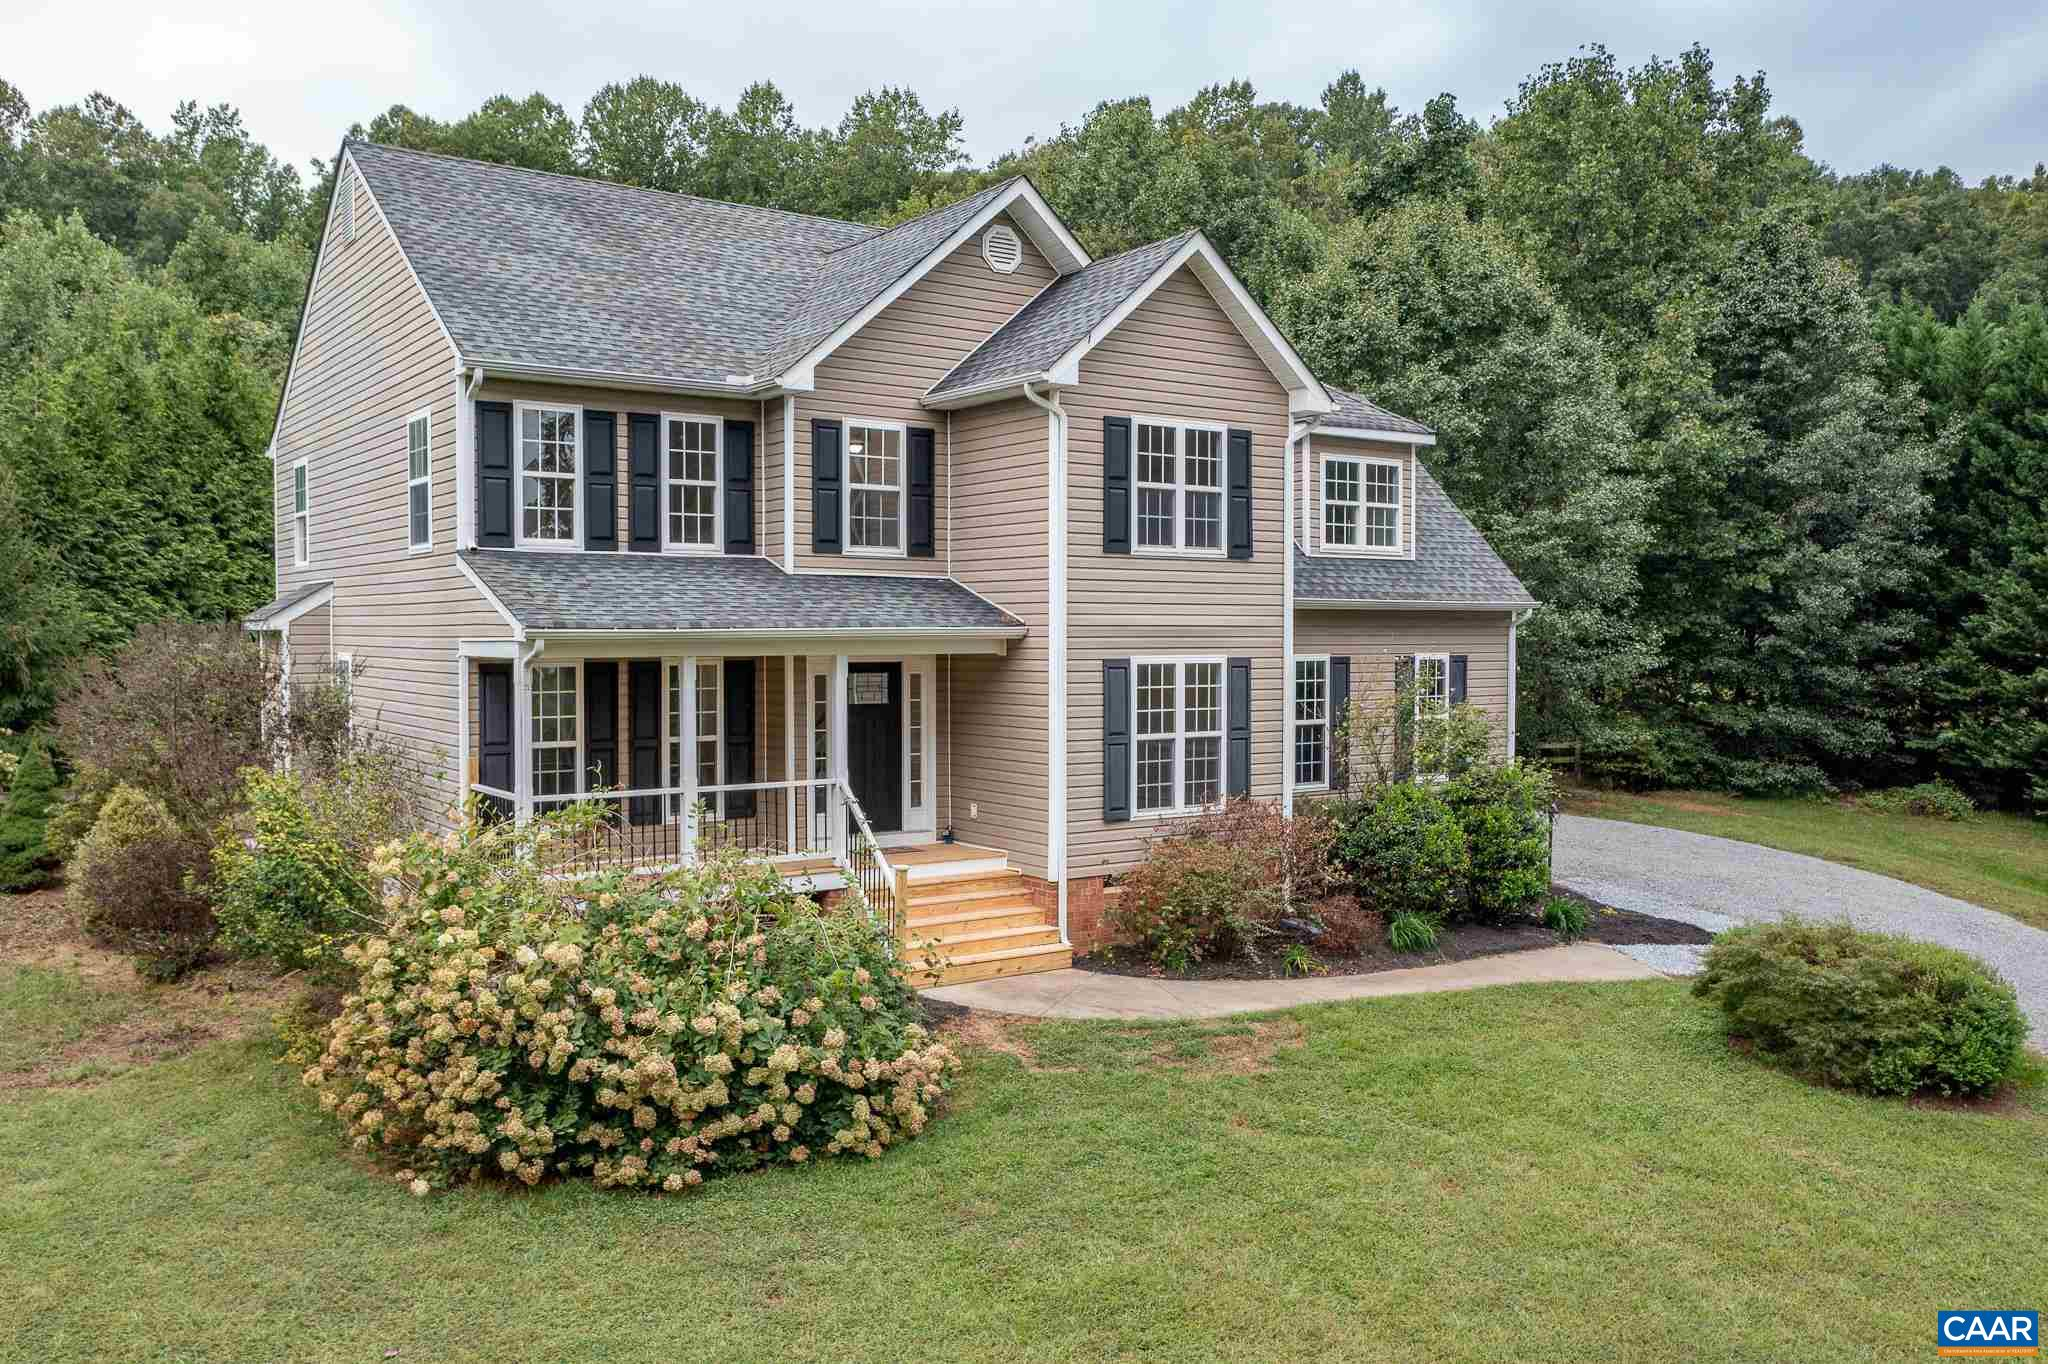 OPEN HOUSE SUNDAY 9/26 1:00-3:00! Beautifully updated quiet, country colonial on over 1.6 acres just across the Greene County line. Freshly painted throughout, the main level features hardwood floors, brand new LVP in the kitchen and sunroom, and newly installed carpet in the living room. The 2nd level showcases all 4 bedrooms, laundry room, new flooring throughout, as well as a spacious master bedroom with a walk-in closet updated master bath. The 2nd bedroom also features an en-suite bathroom. Enjoy the sunrise from the new, covered front porch and the sunset from private, landscaped back patio. The fully fenced backyard is perfect for your pets!